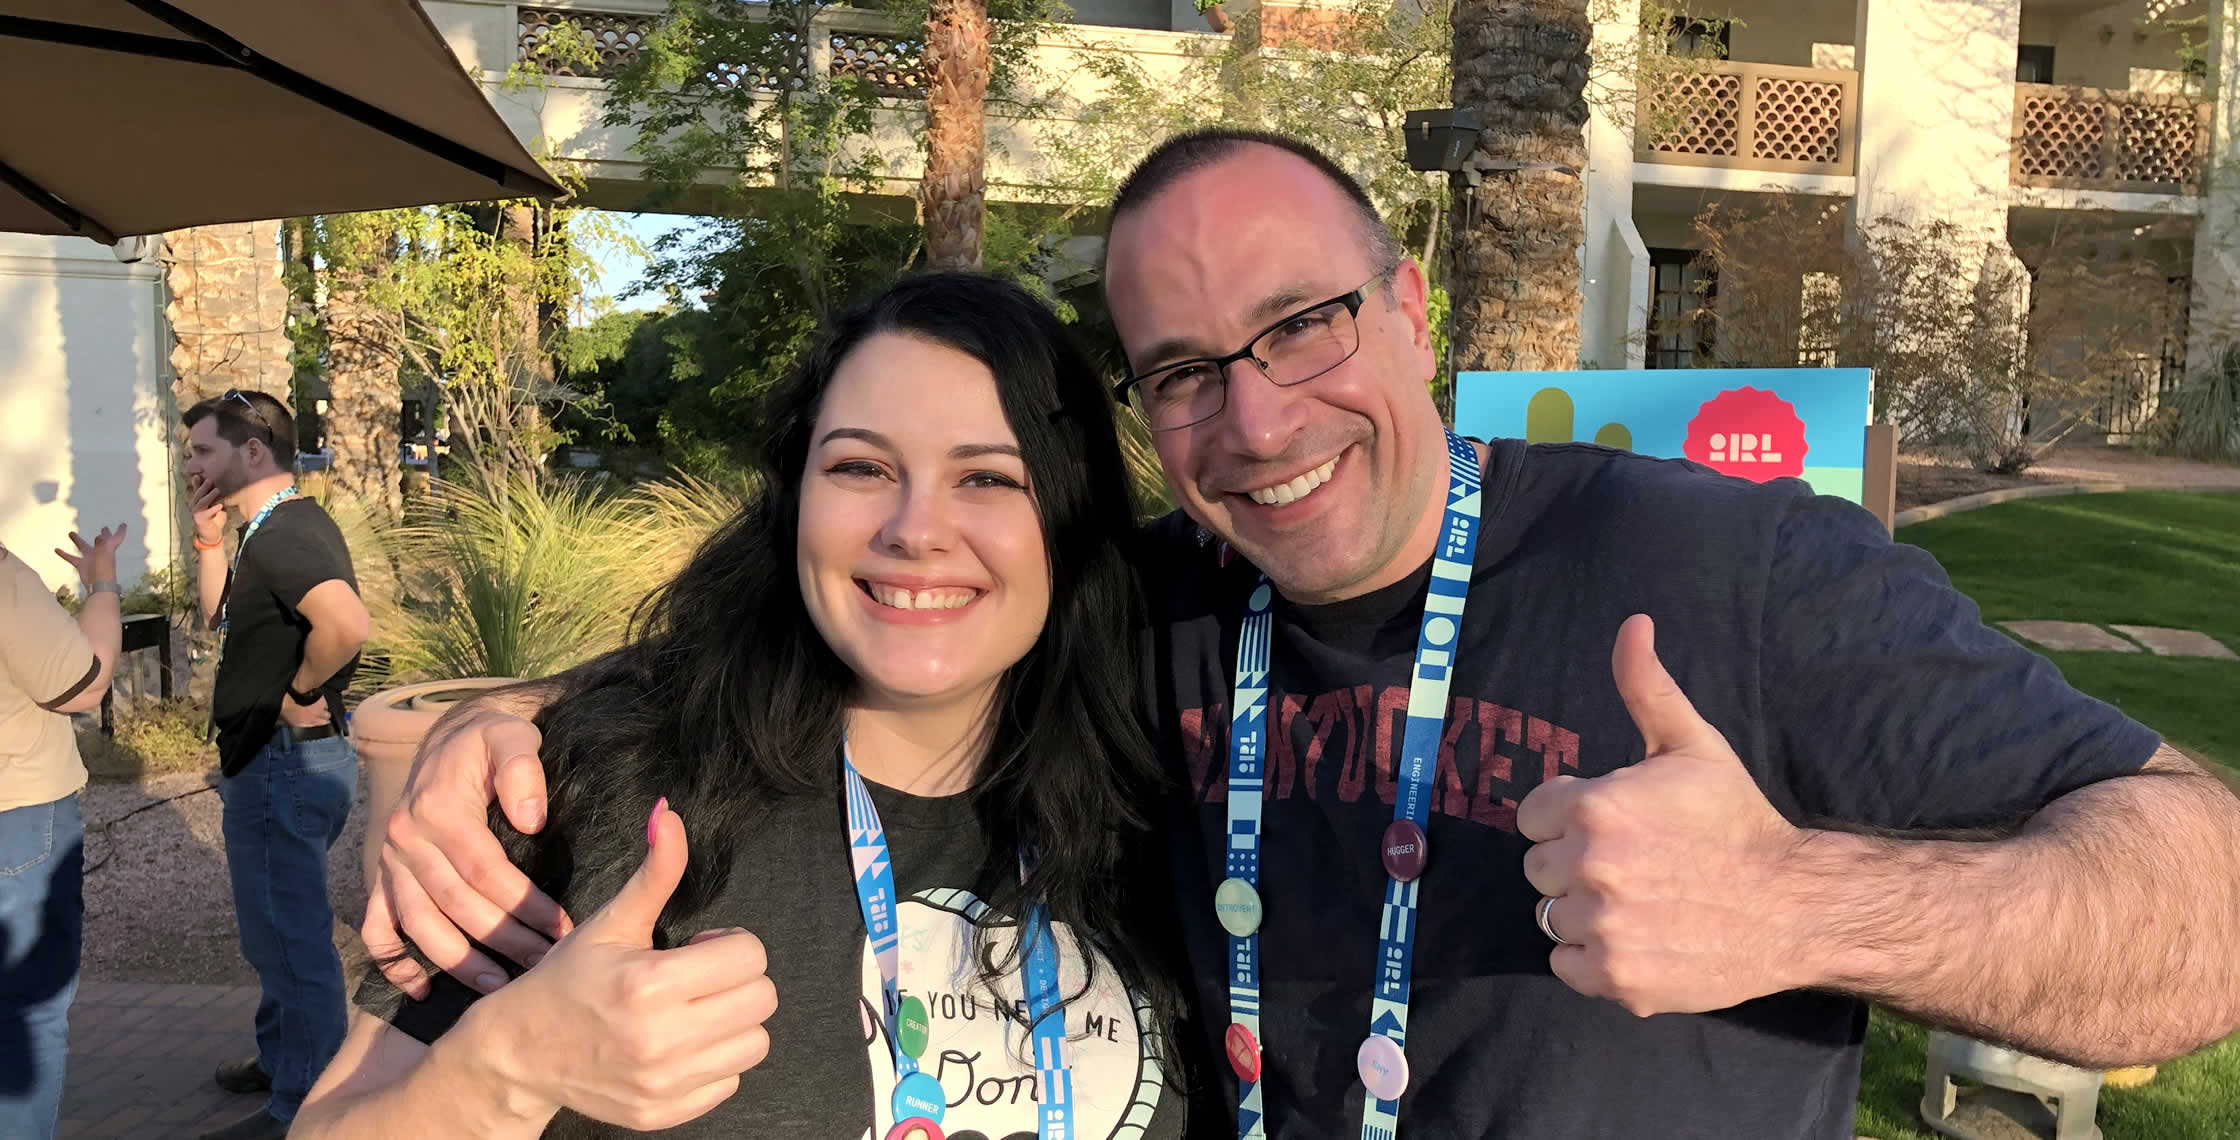 Ben Nadel at InVision In Real Life (IRL) 2019 (Phoenix, AZ) with: Lindsey Redinger